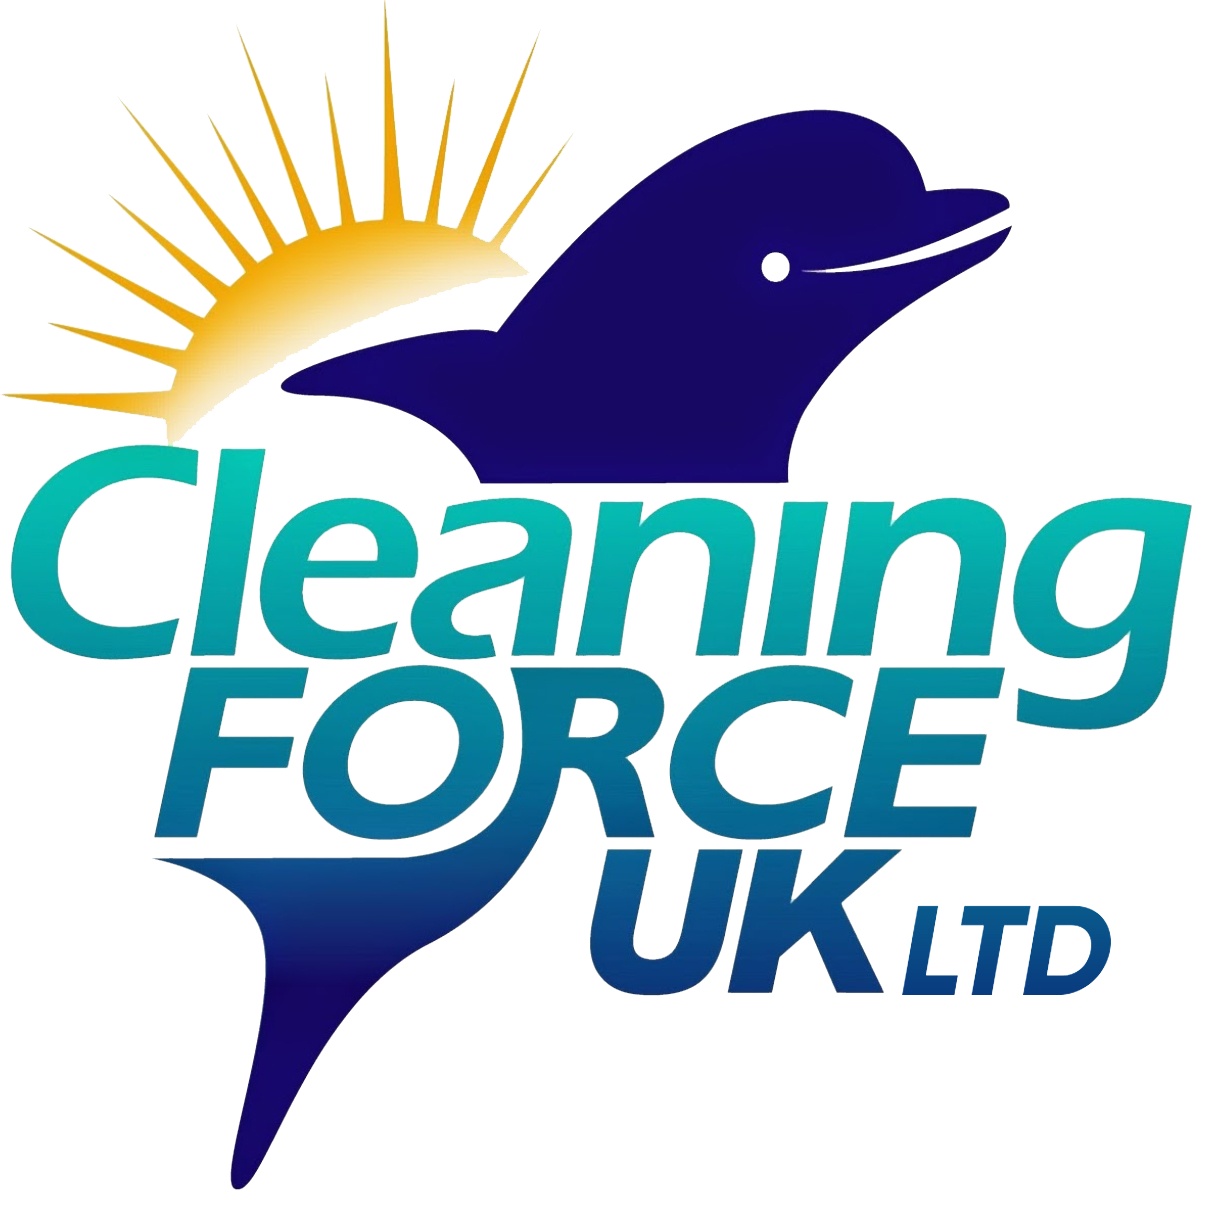 Carpet Cleaners Birmingham - Carpet Cleaning Birmingham